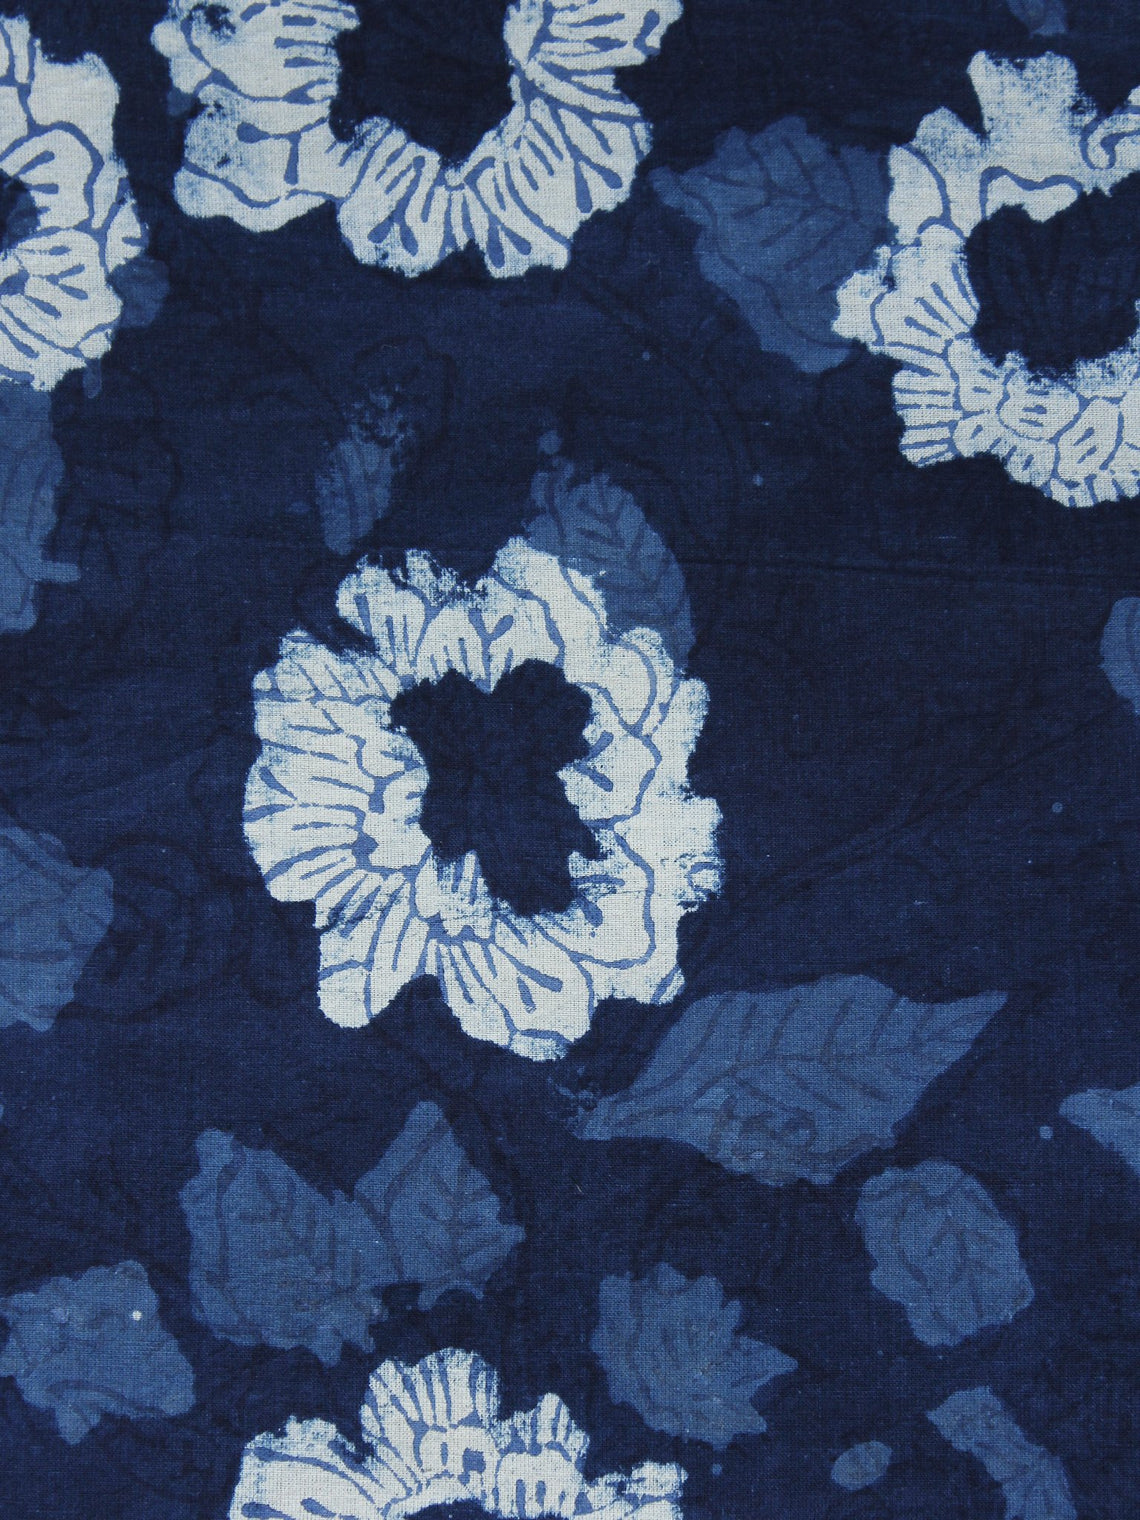 Indigo Ivory Hand Block Printed Cotton Fabric Per Meter - F001F1109